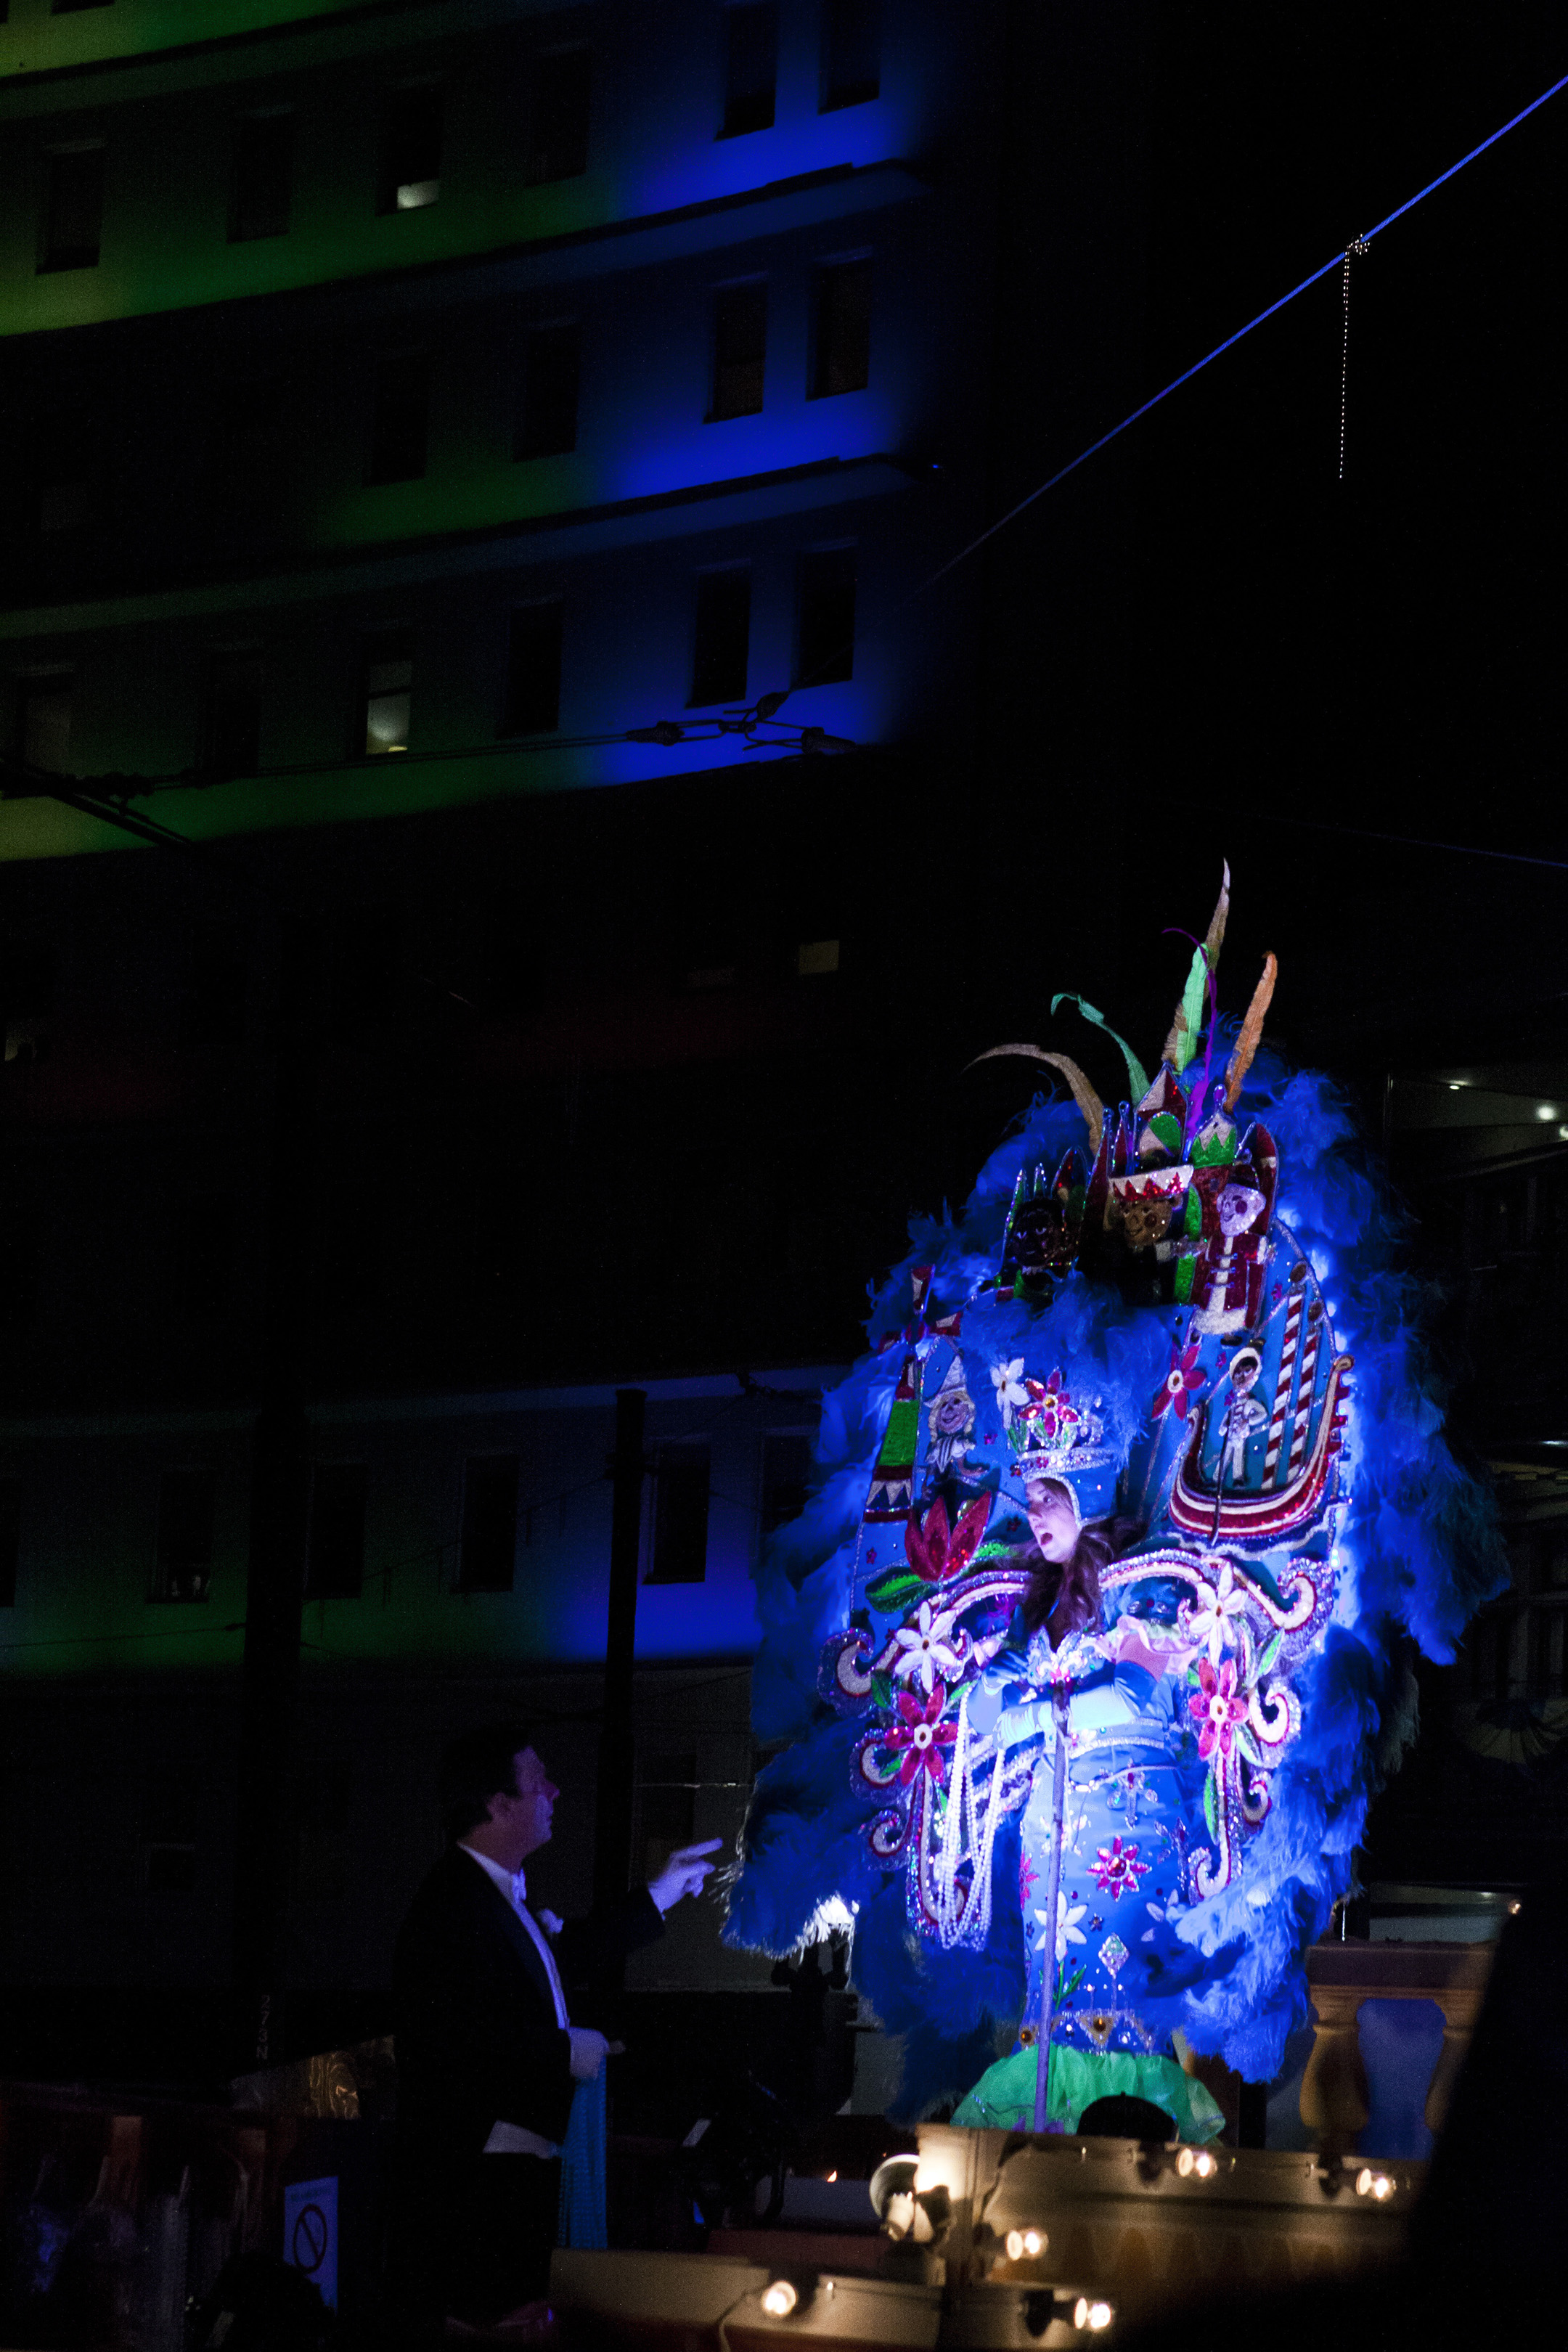 An Endymion maid participates in Saturday's nighttime festivities, with her costume decked out with extravagant jewels and lights.